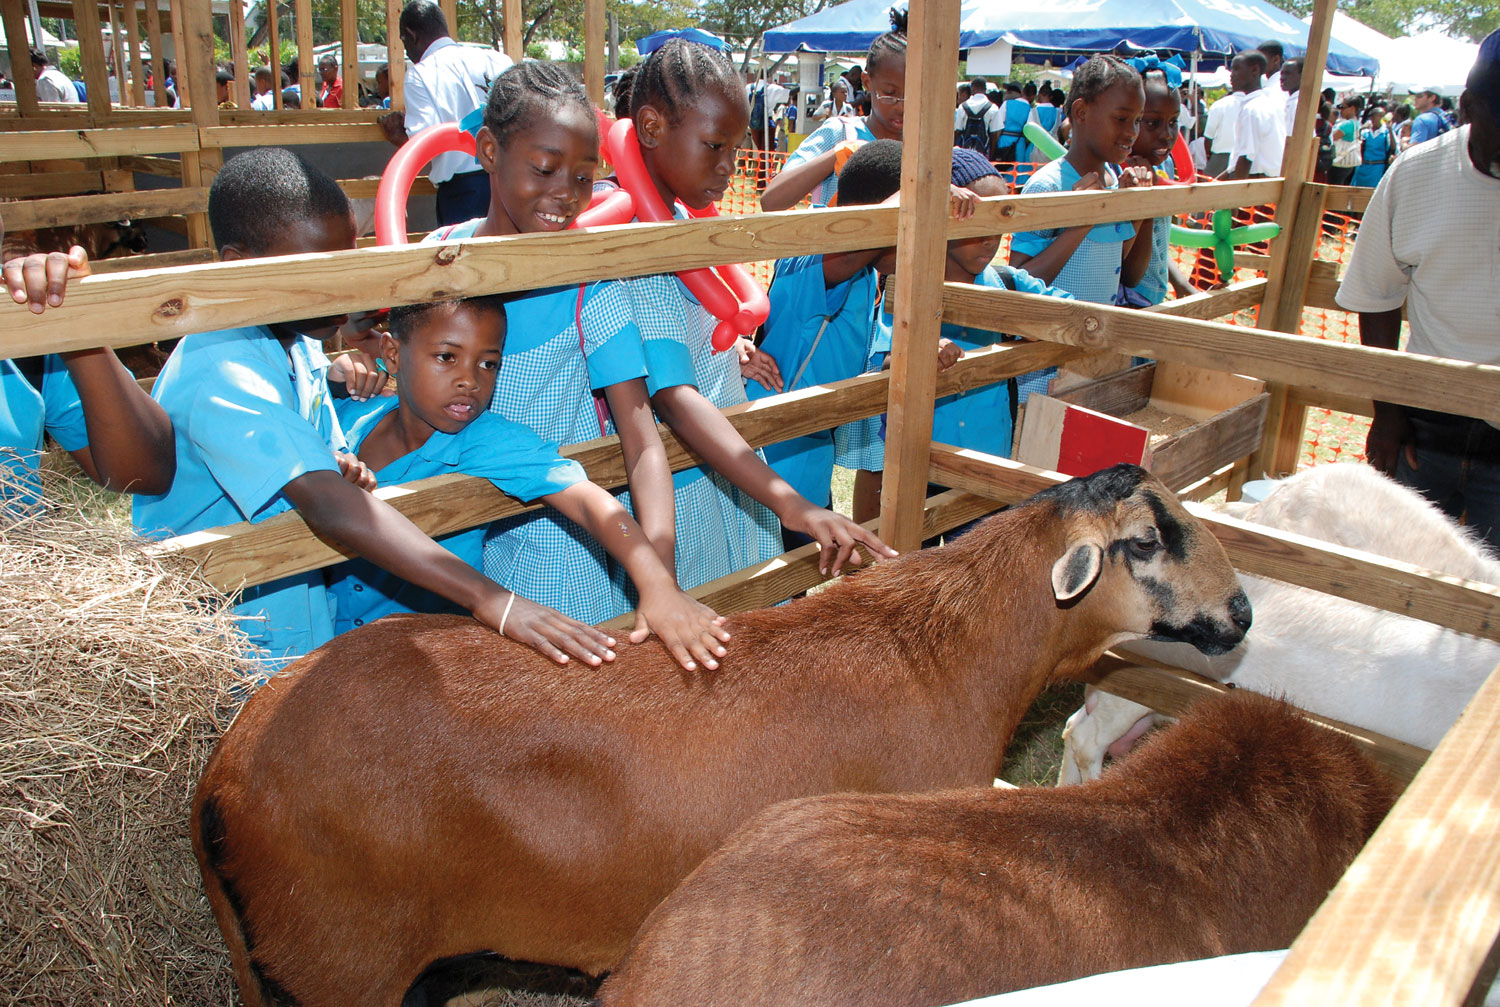 Children petting sheep at one of the many exhibits at Agrofest. Photograph courtesy AGROFEST 2010